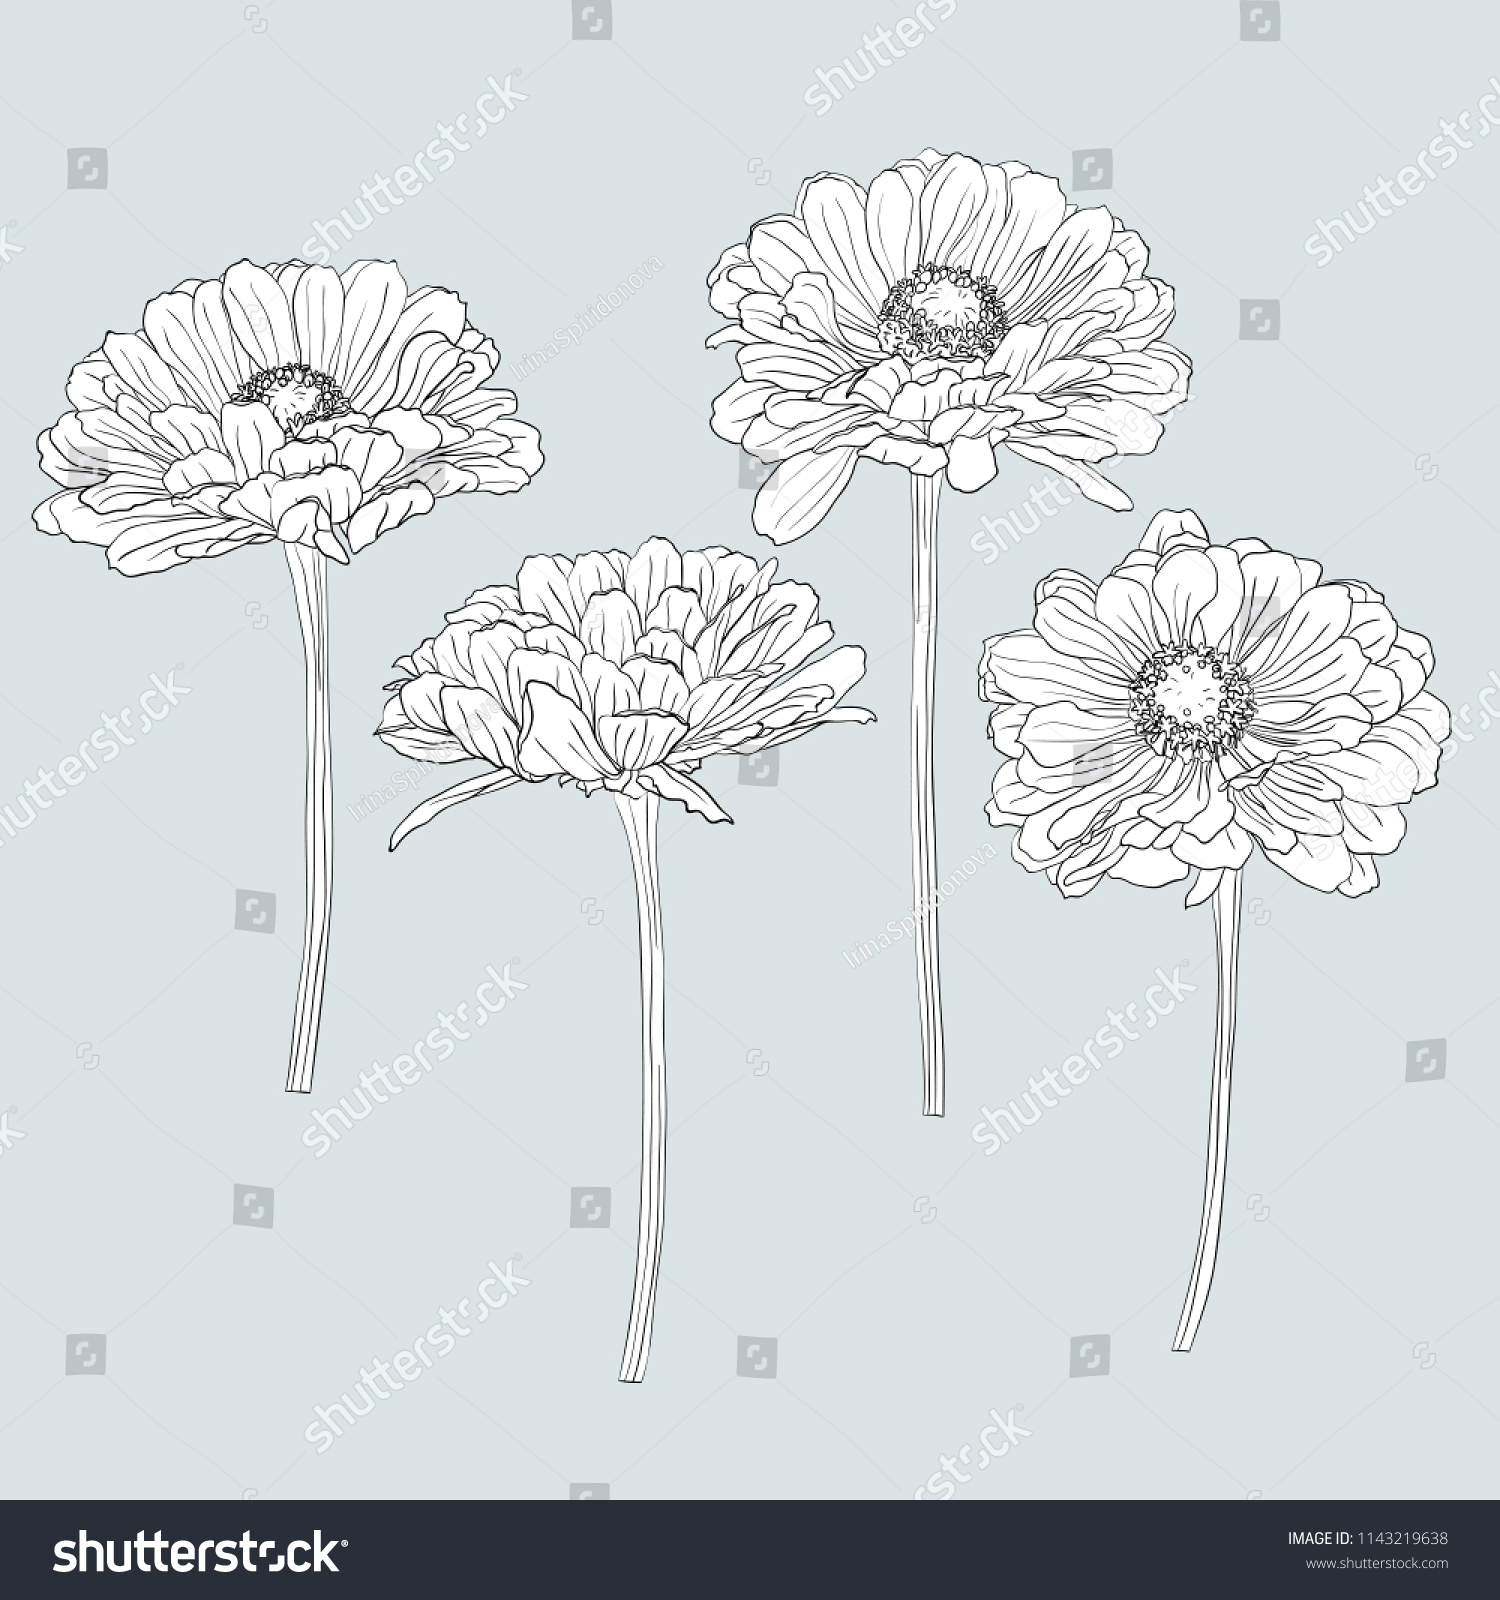 Drawing Flowers Illustration Vector And Clip Art Ez Canvas